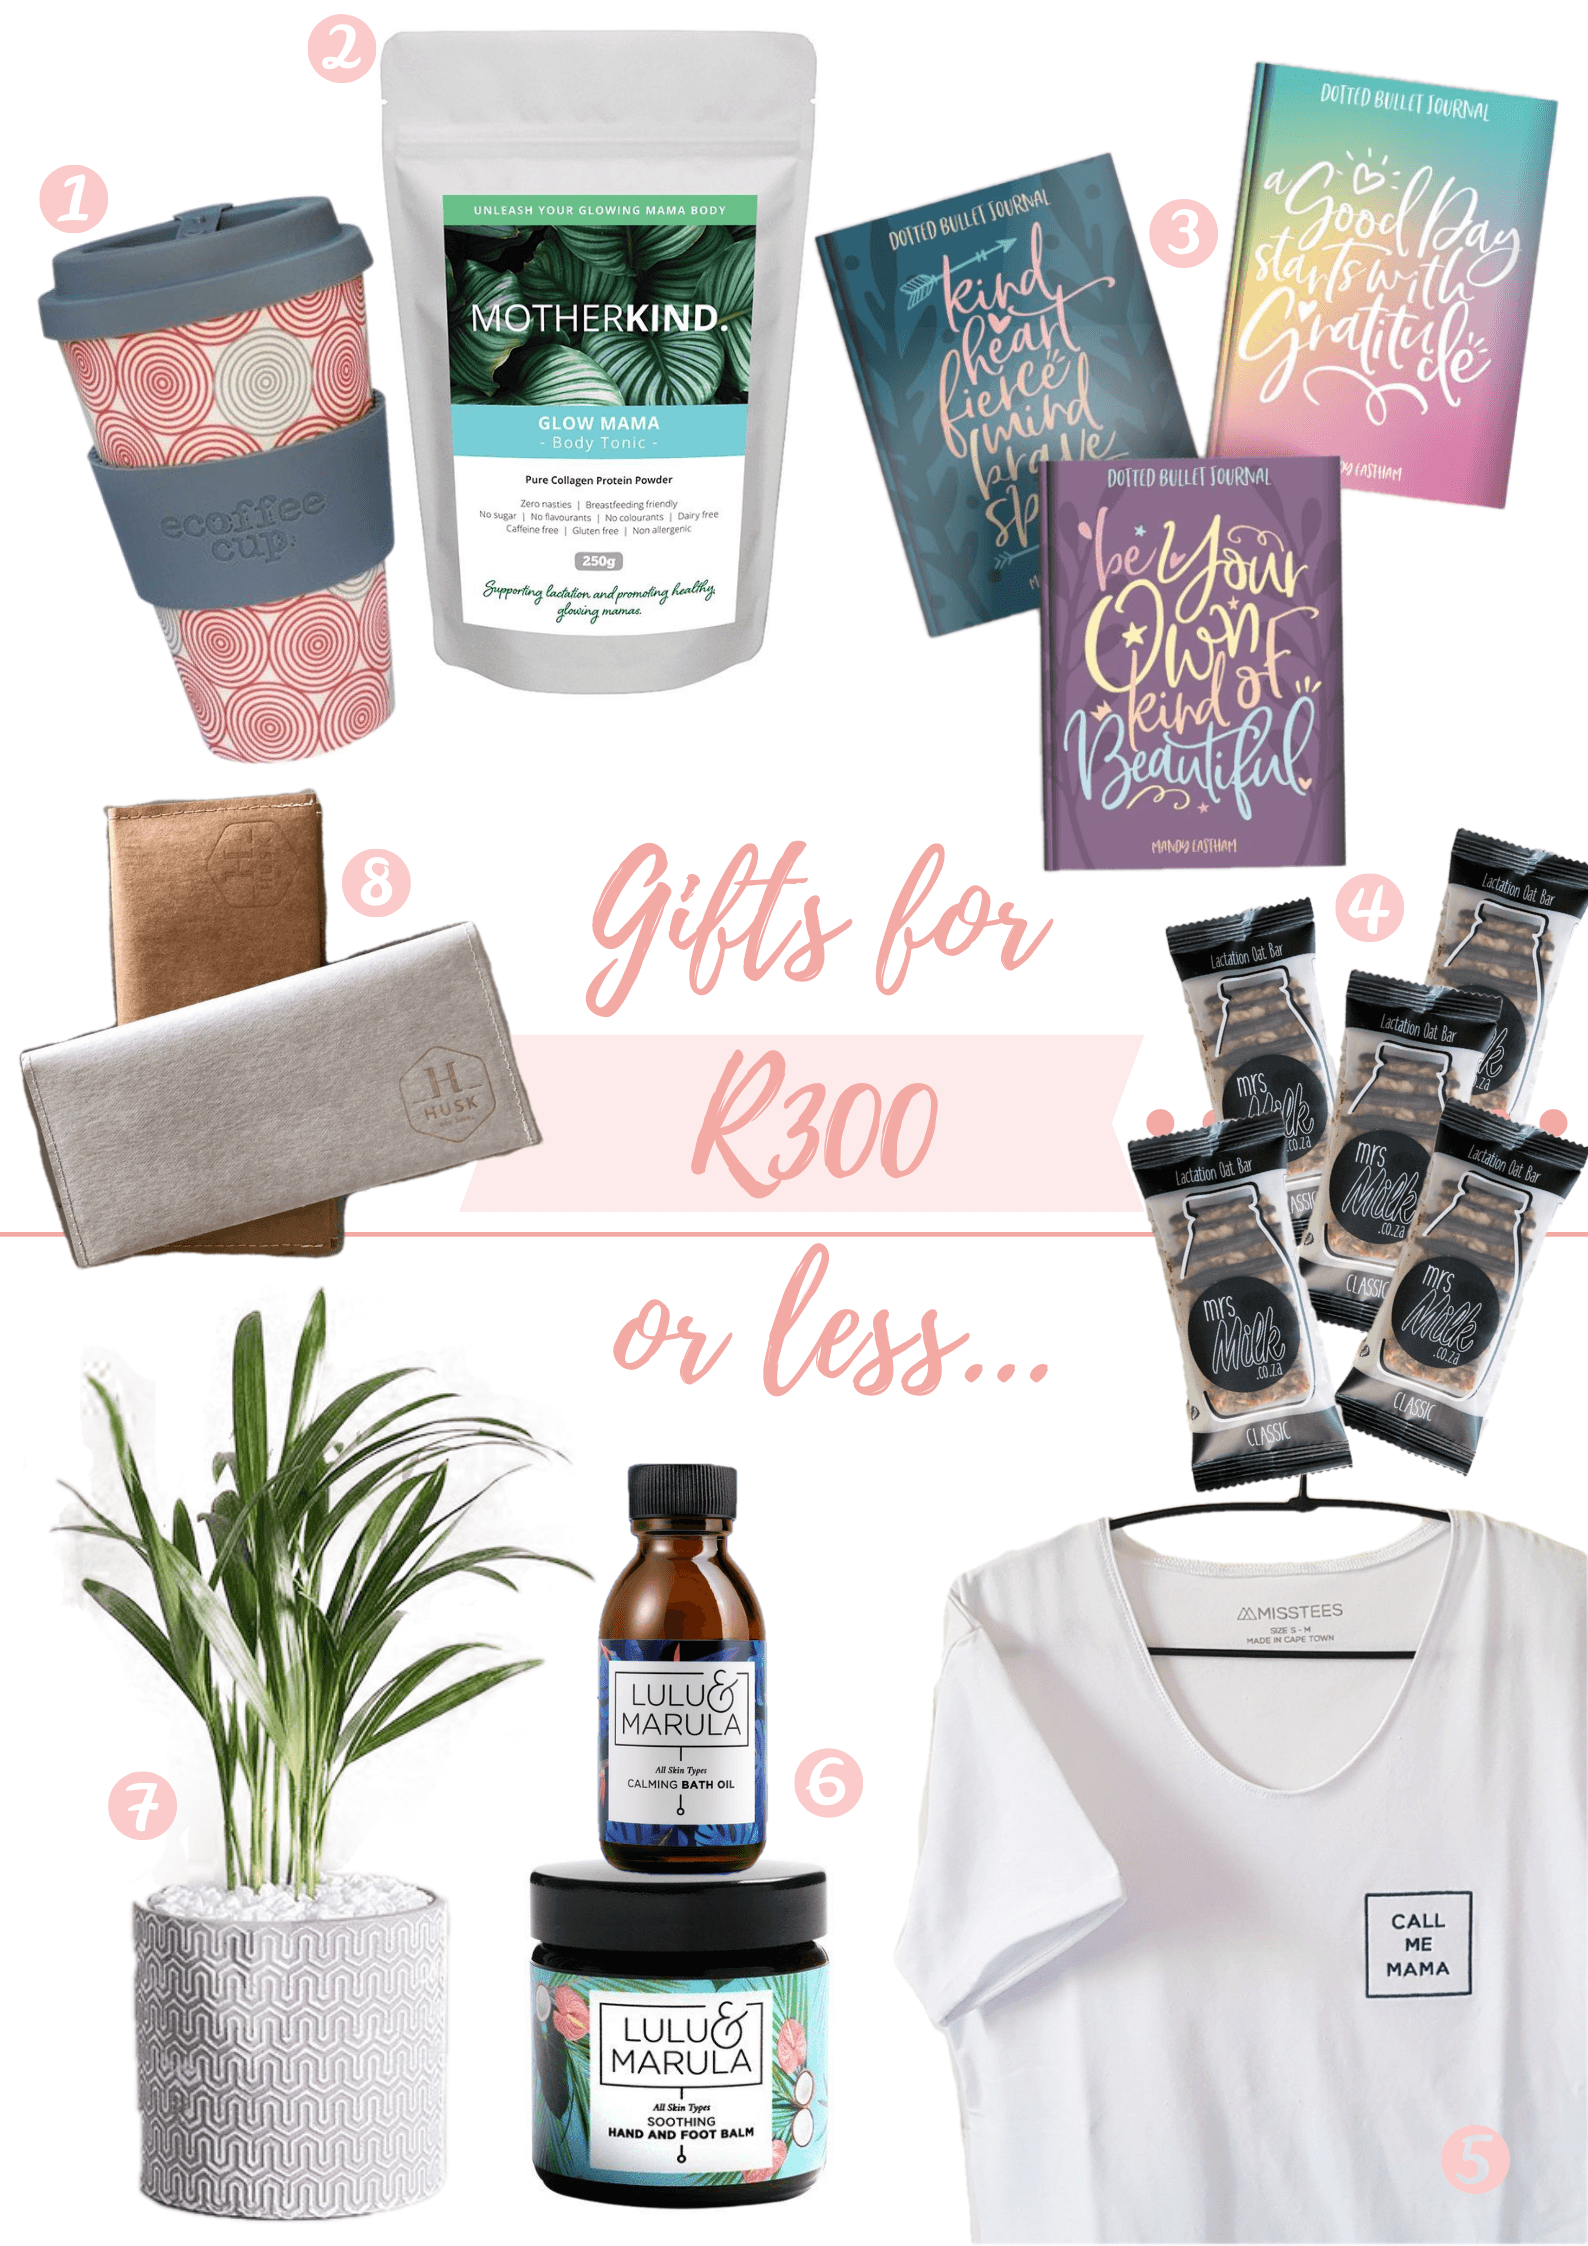 Best-gifts-for-mom-for-under-R300